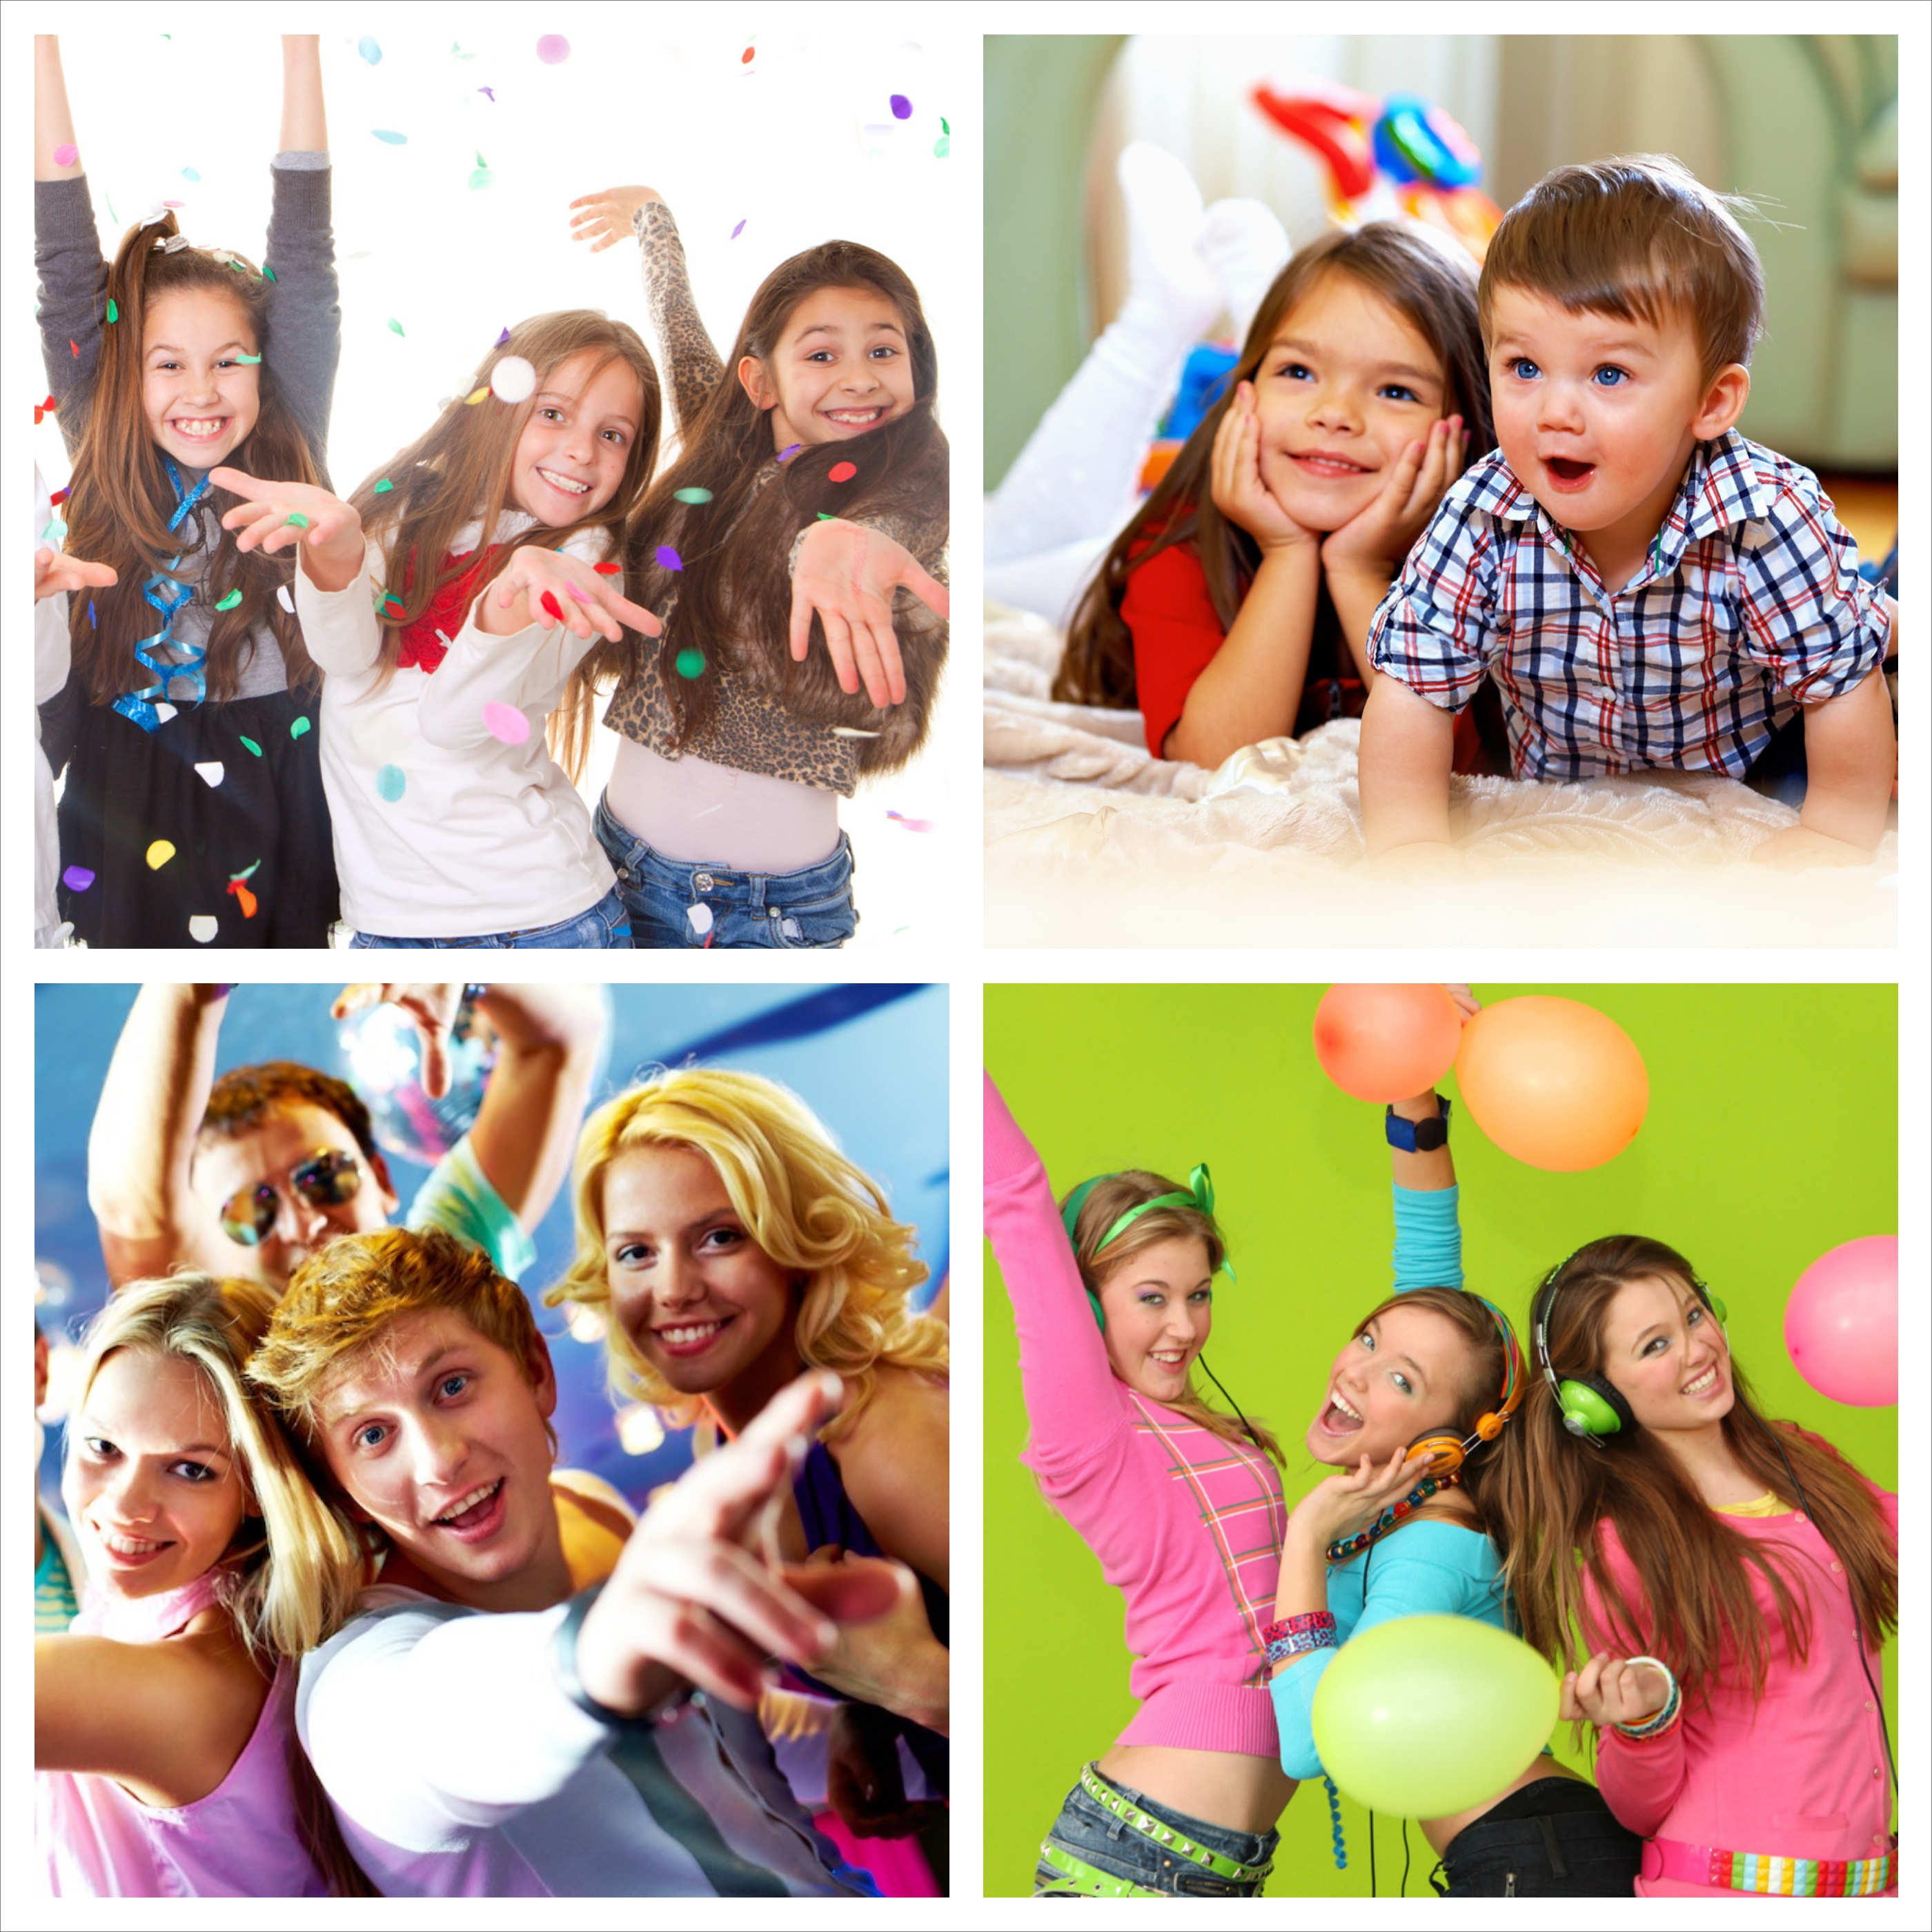 At Superstar Parties we offer a range of fun party packages that children and teens will love.